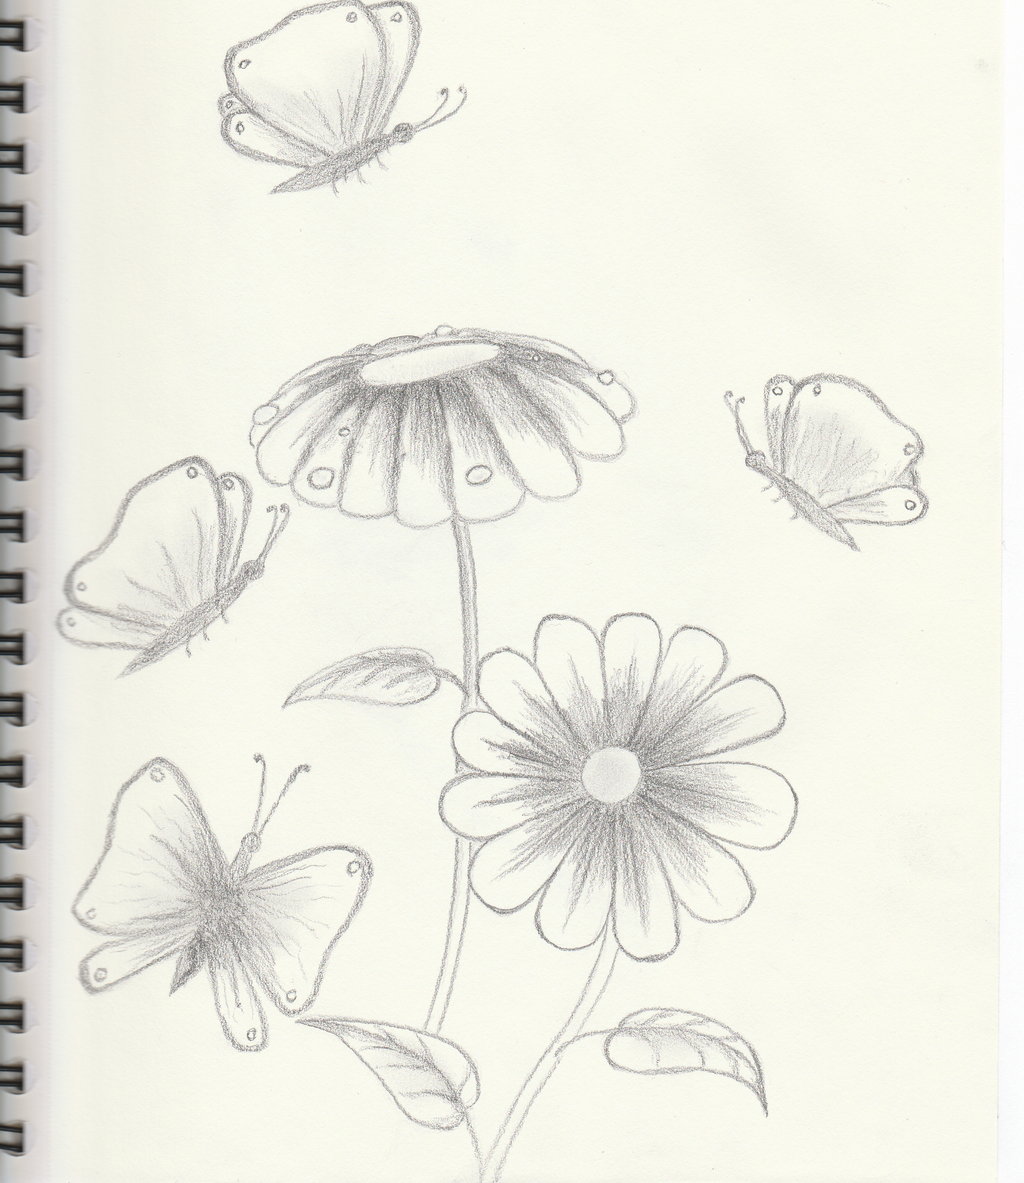 Sketch of flowers and butterflies by getupp